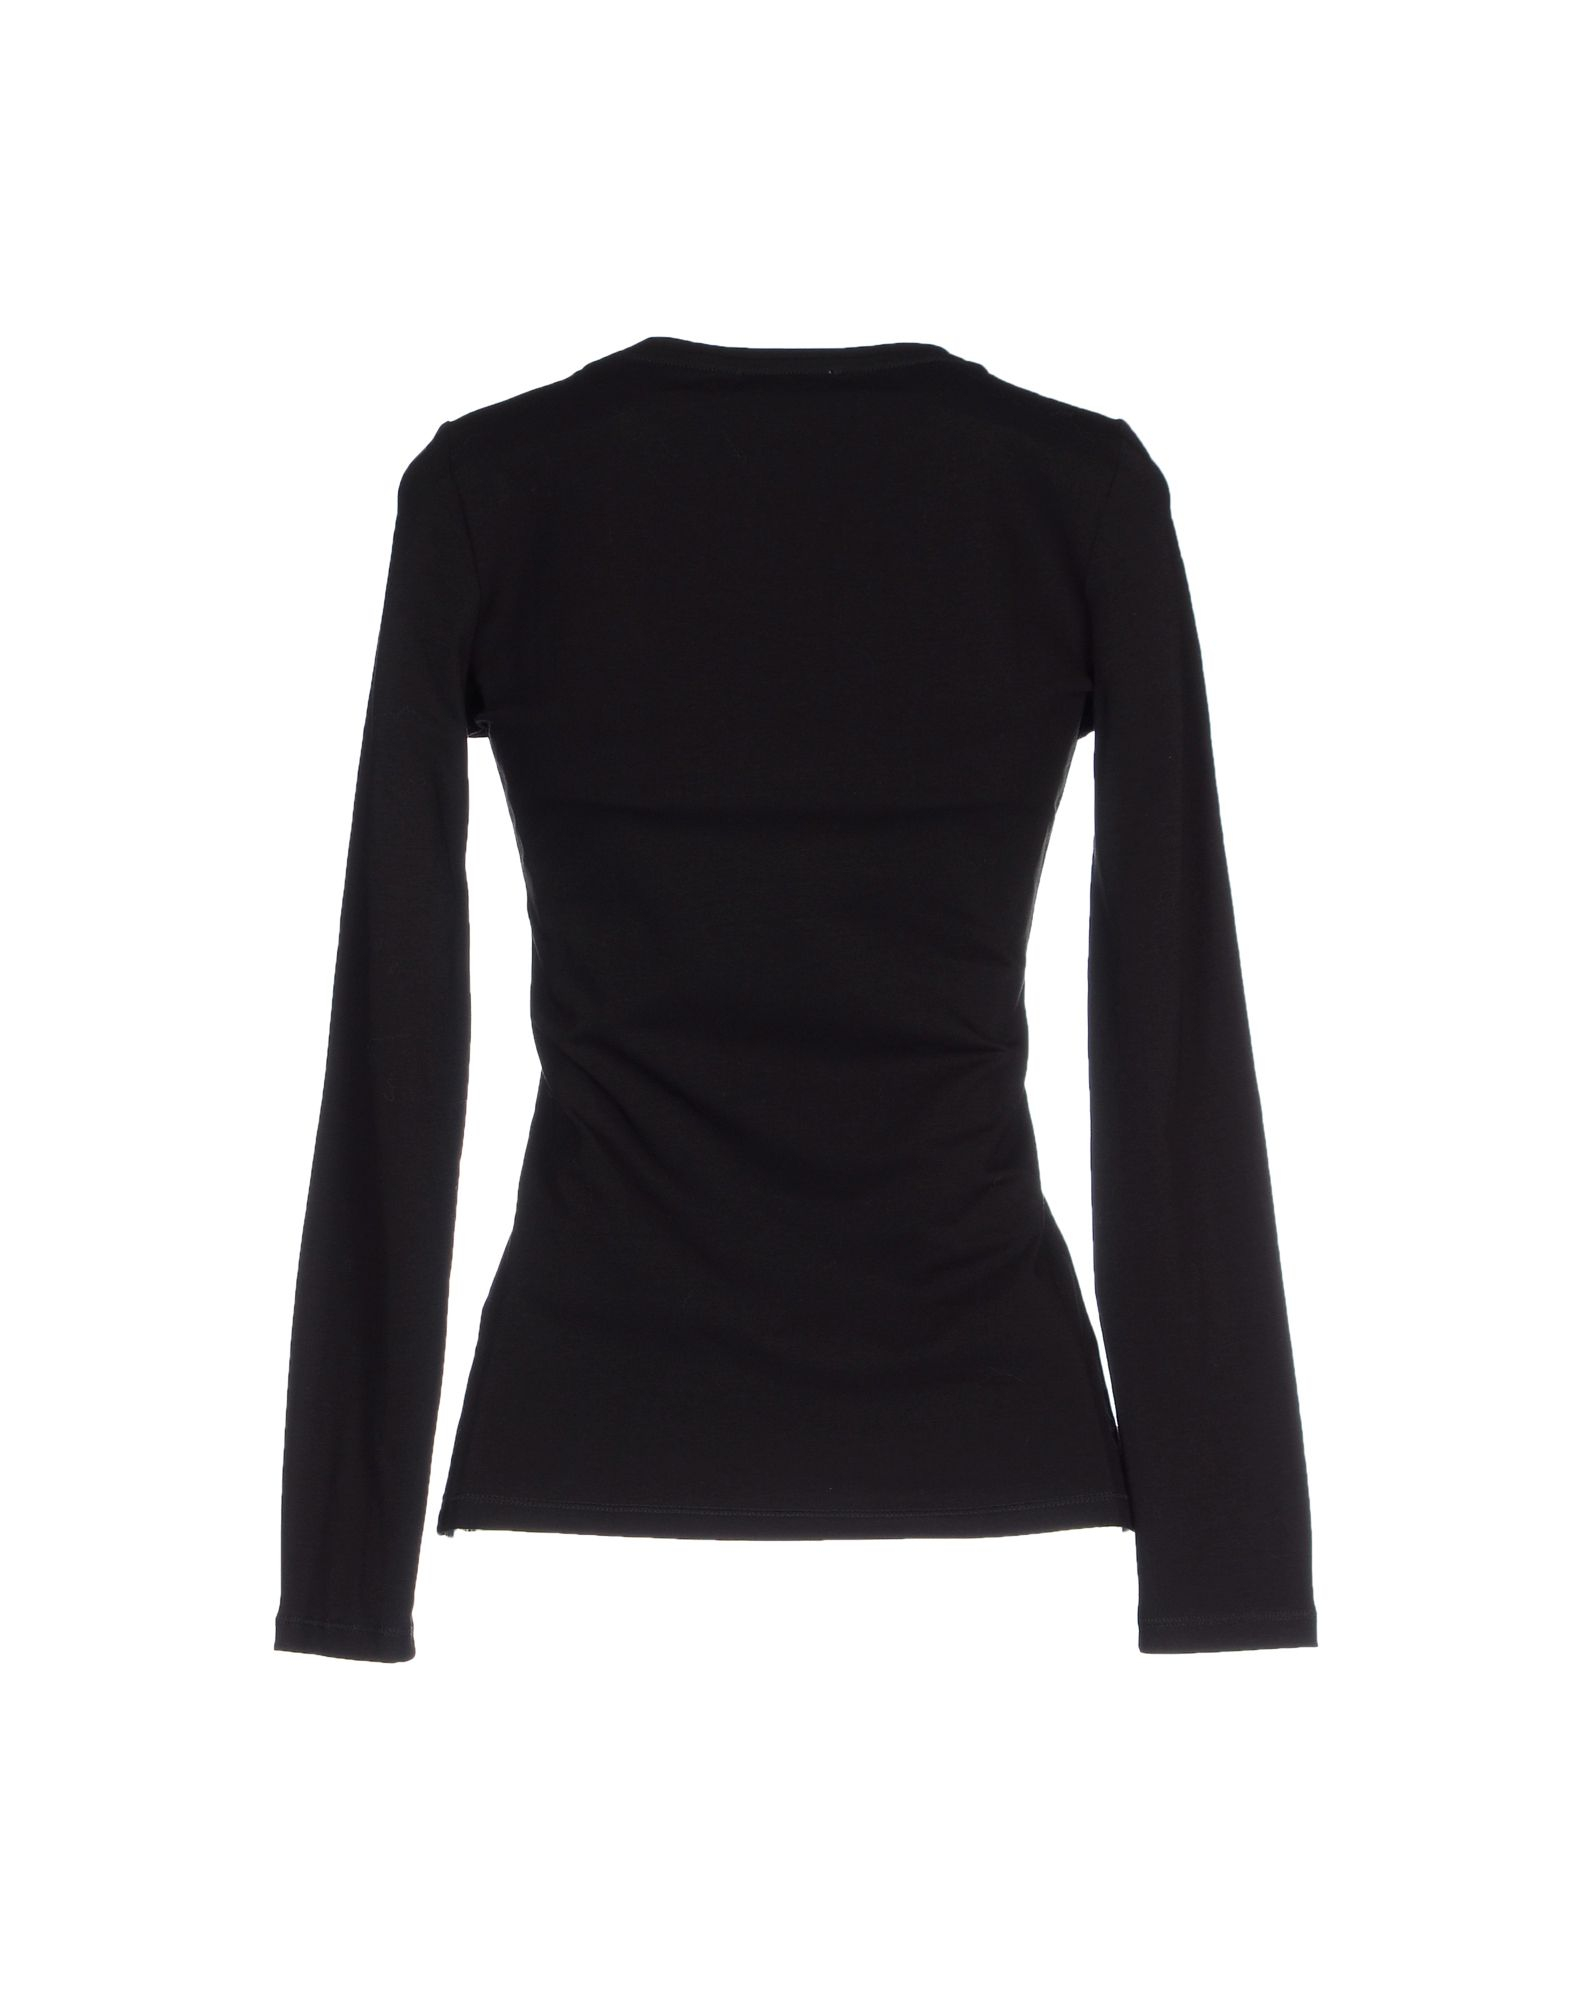 Guess T-shirt in Black | Lyst